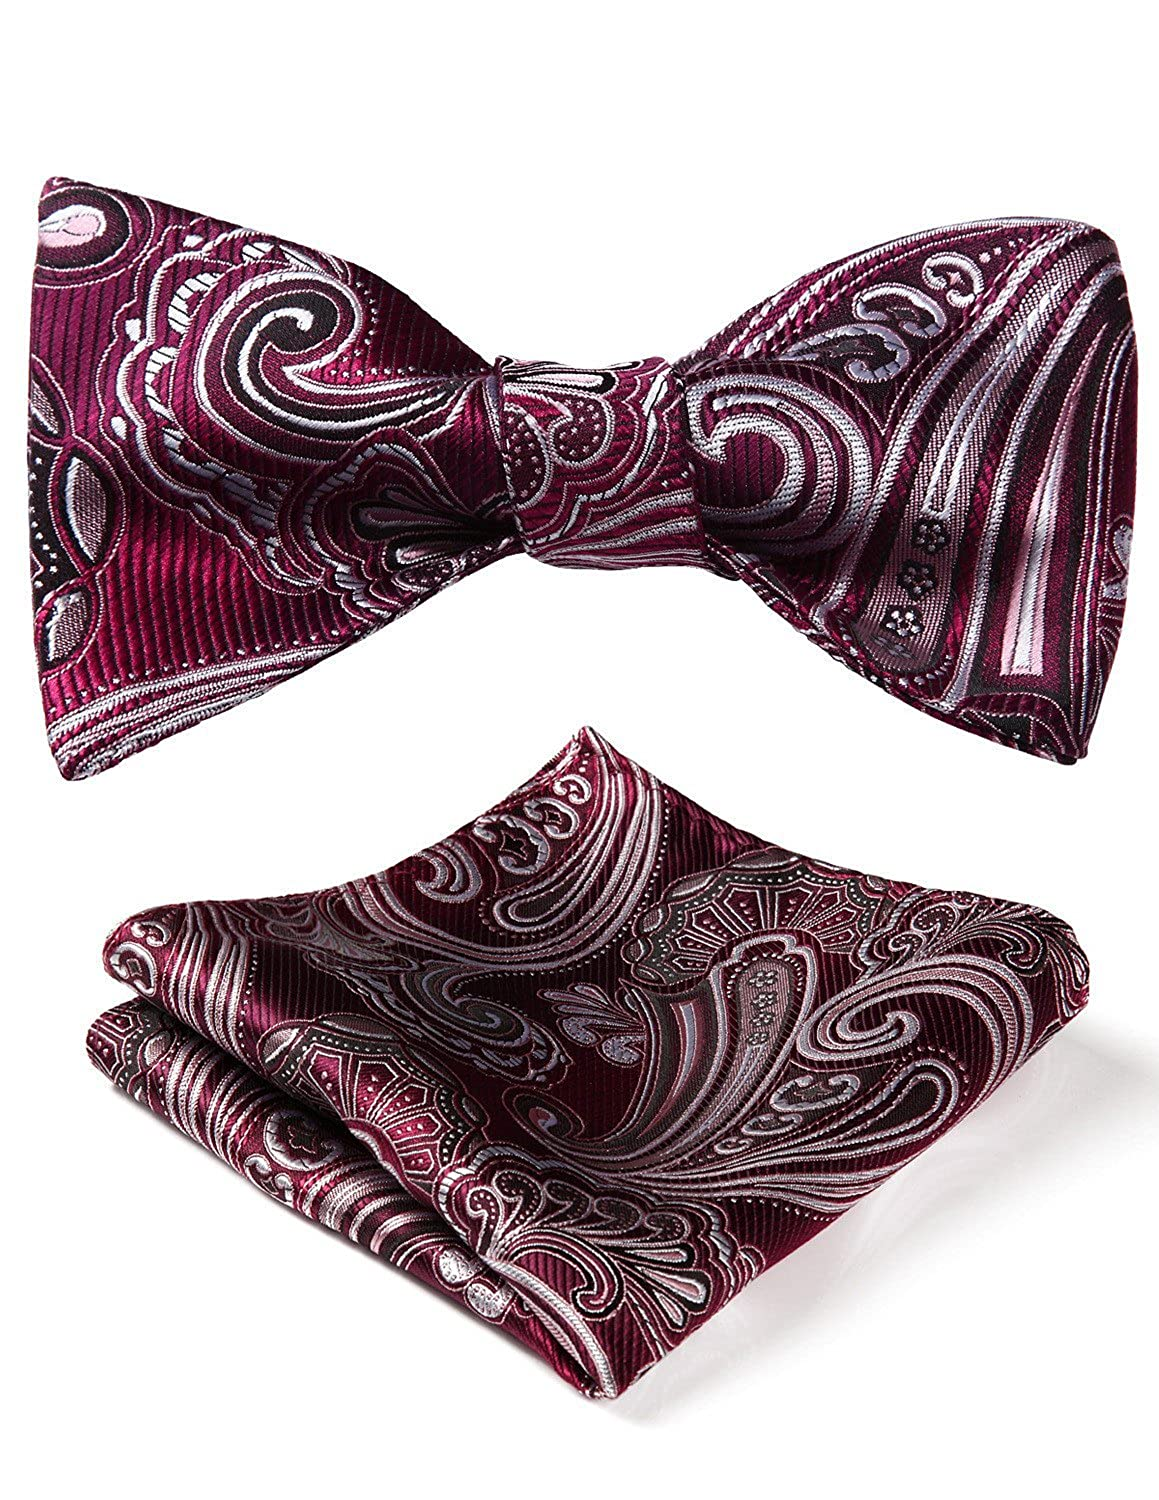 1920s Bow Ties | Gatsby Tie,  Art Deco Tie HISDERN Mens Paisley Jacquard Wedding Party Self Bow Tie Pocket Square Set £7.99 AT vintagedancer.com